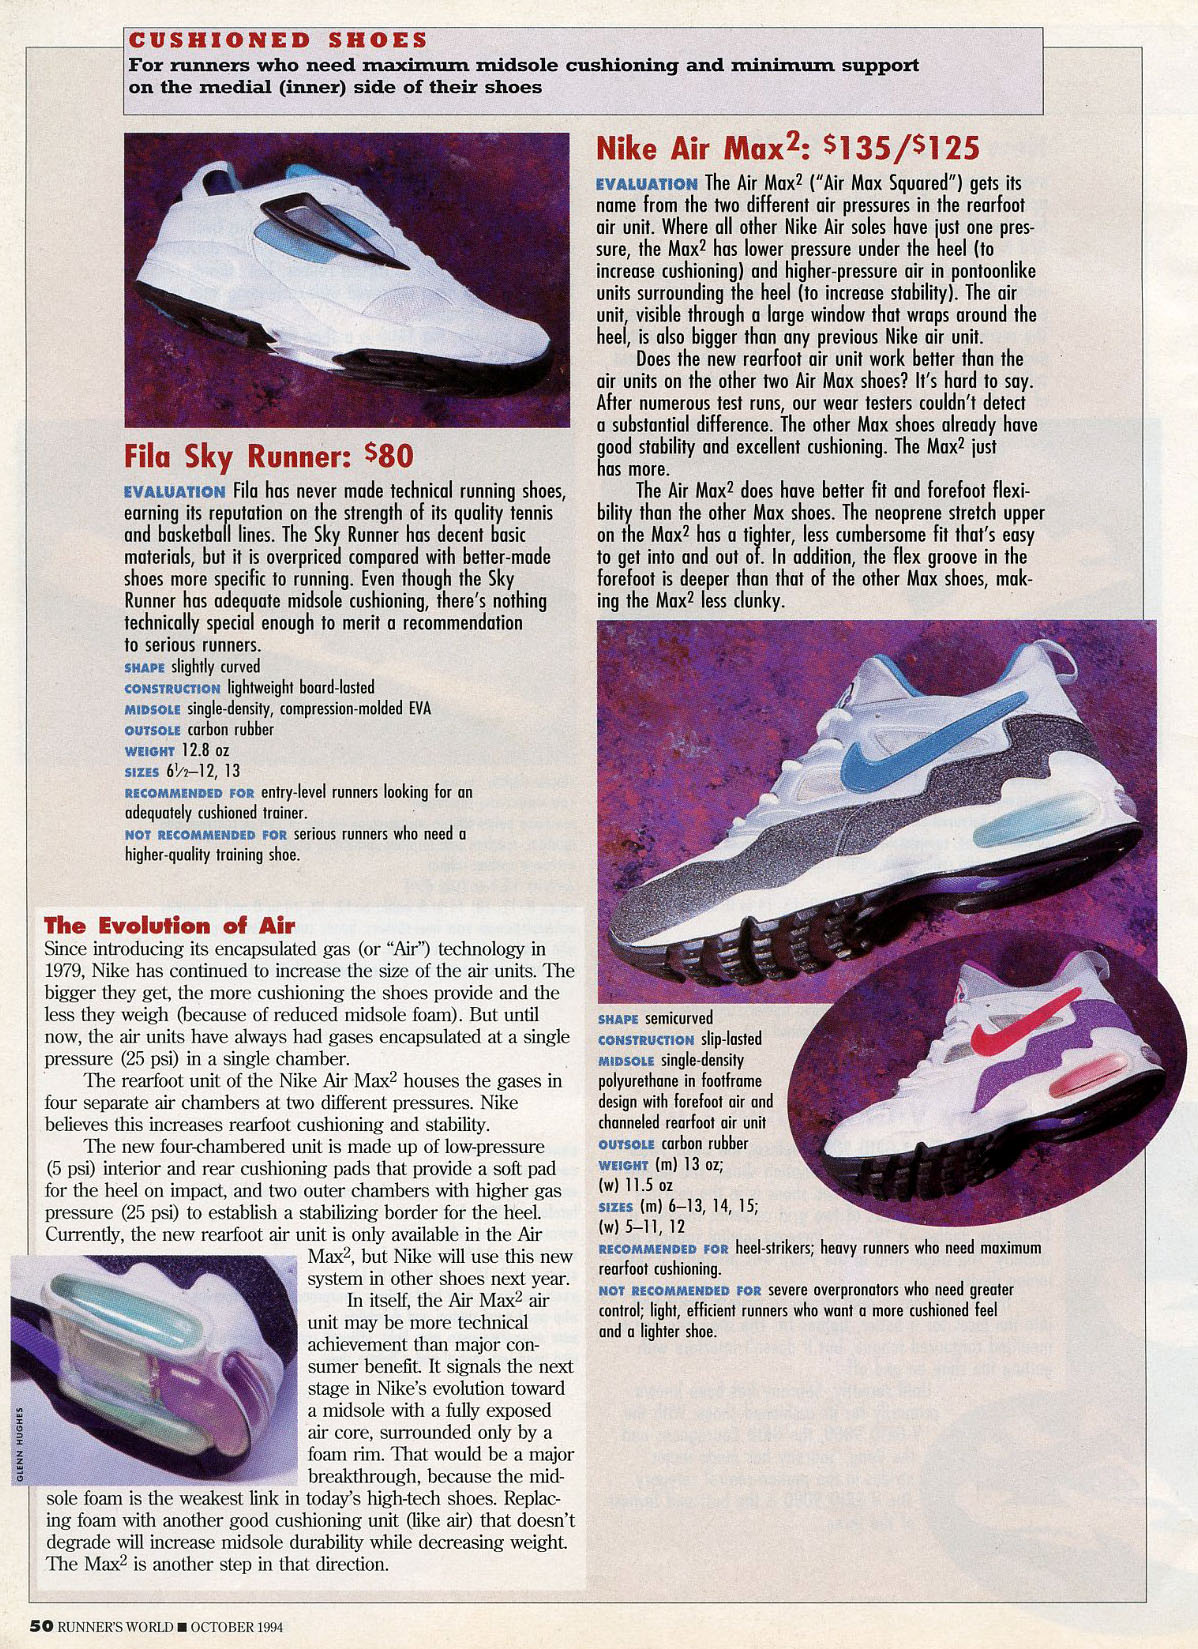 Underrated Air: An Ode To My Favorite Air Max Model, the